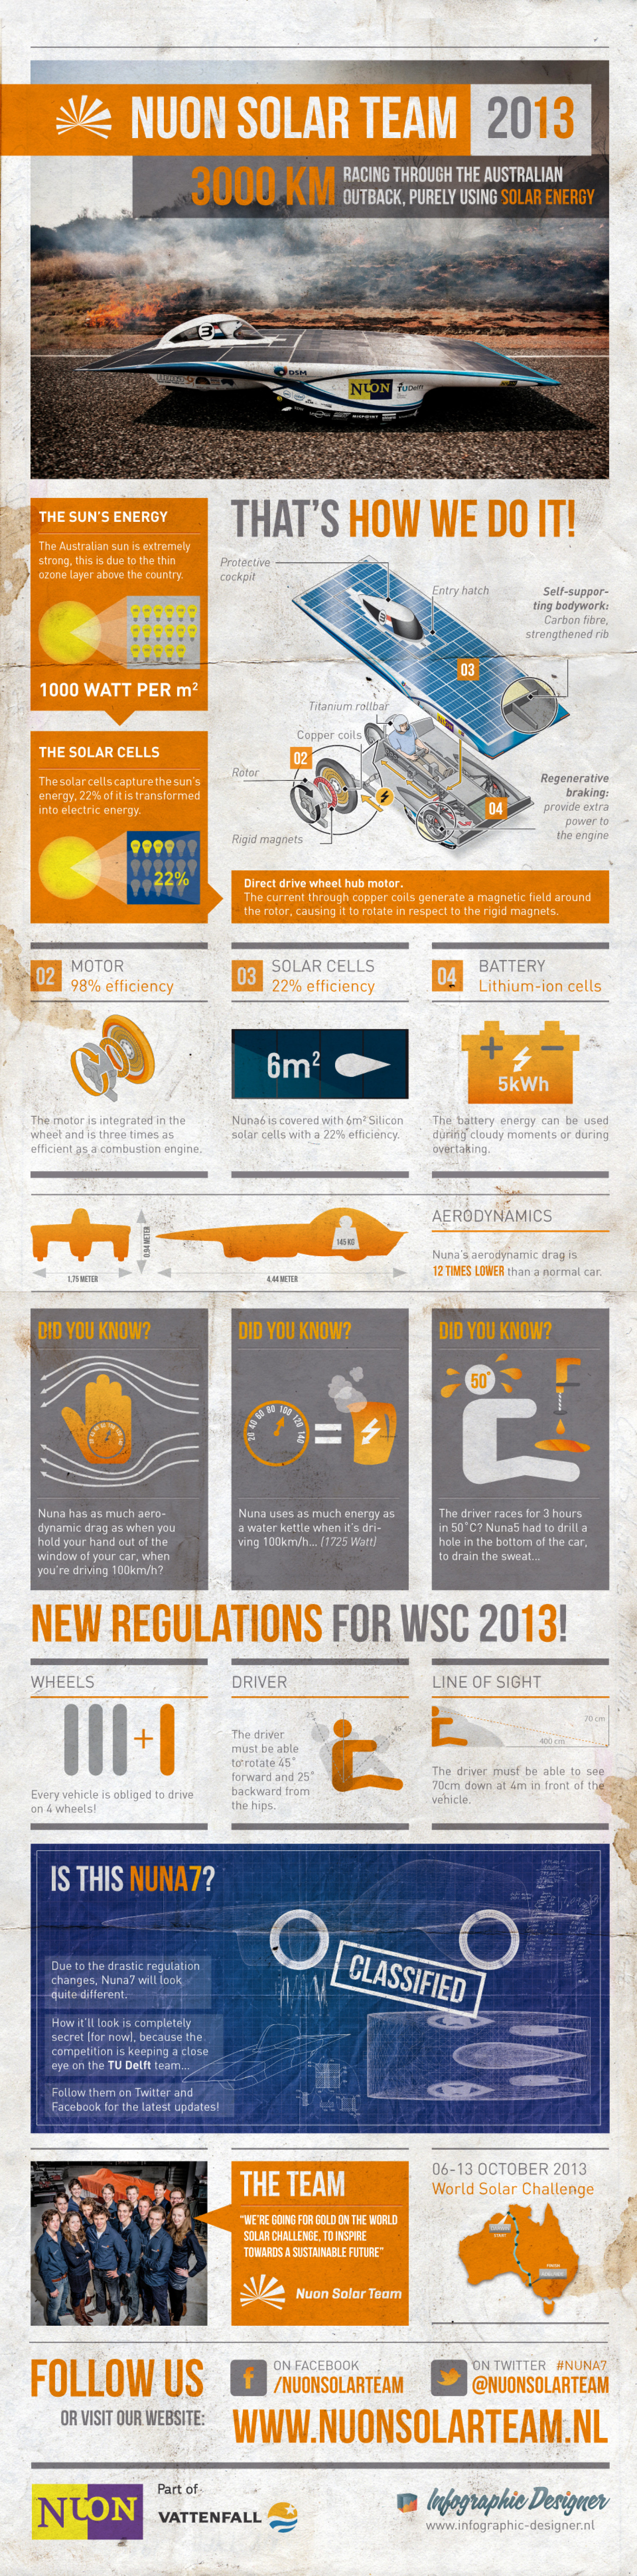 Nuon Solar Team  Infographic